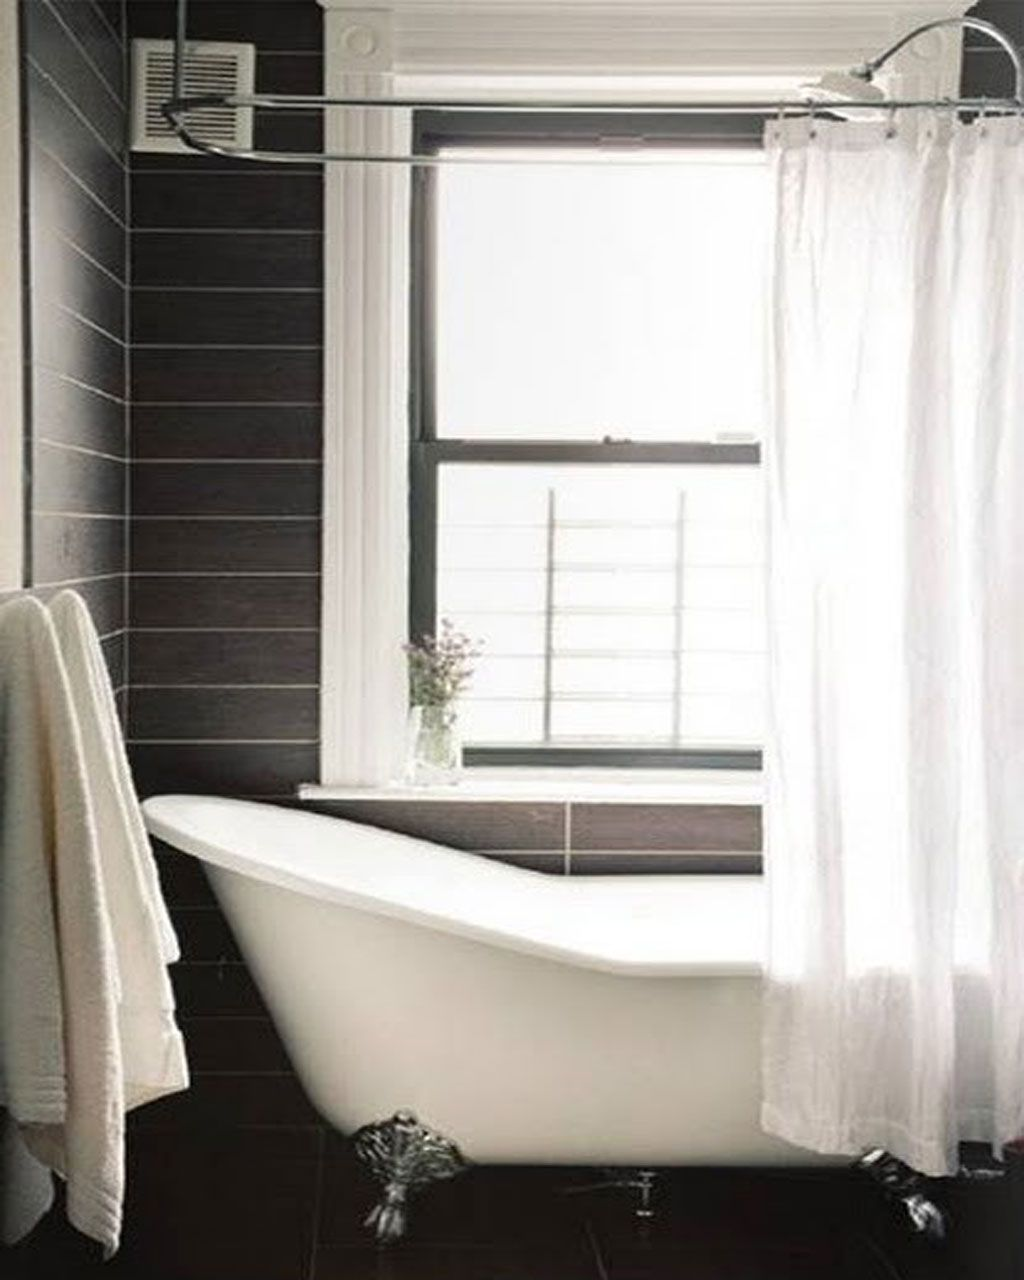 database combo shower rod wiki bath the with scene way elegant parc dat and tub bathroom decor anime clawfoot curtain green for